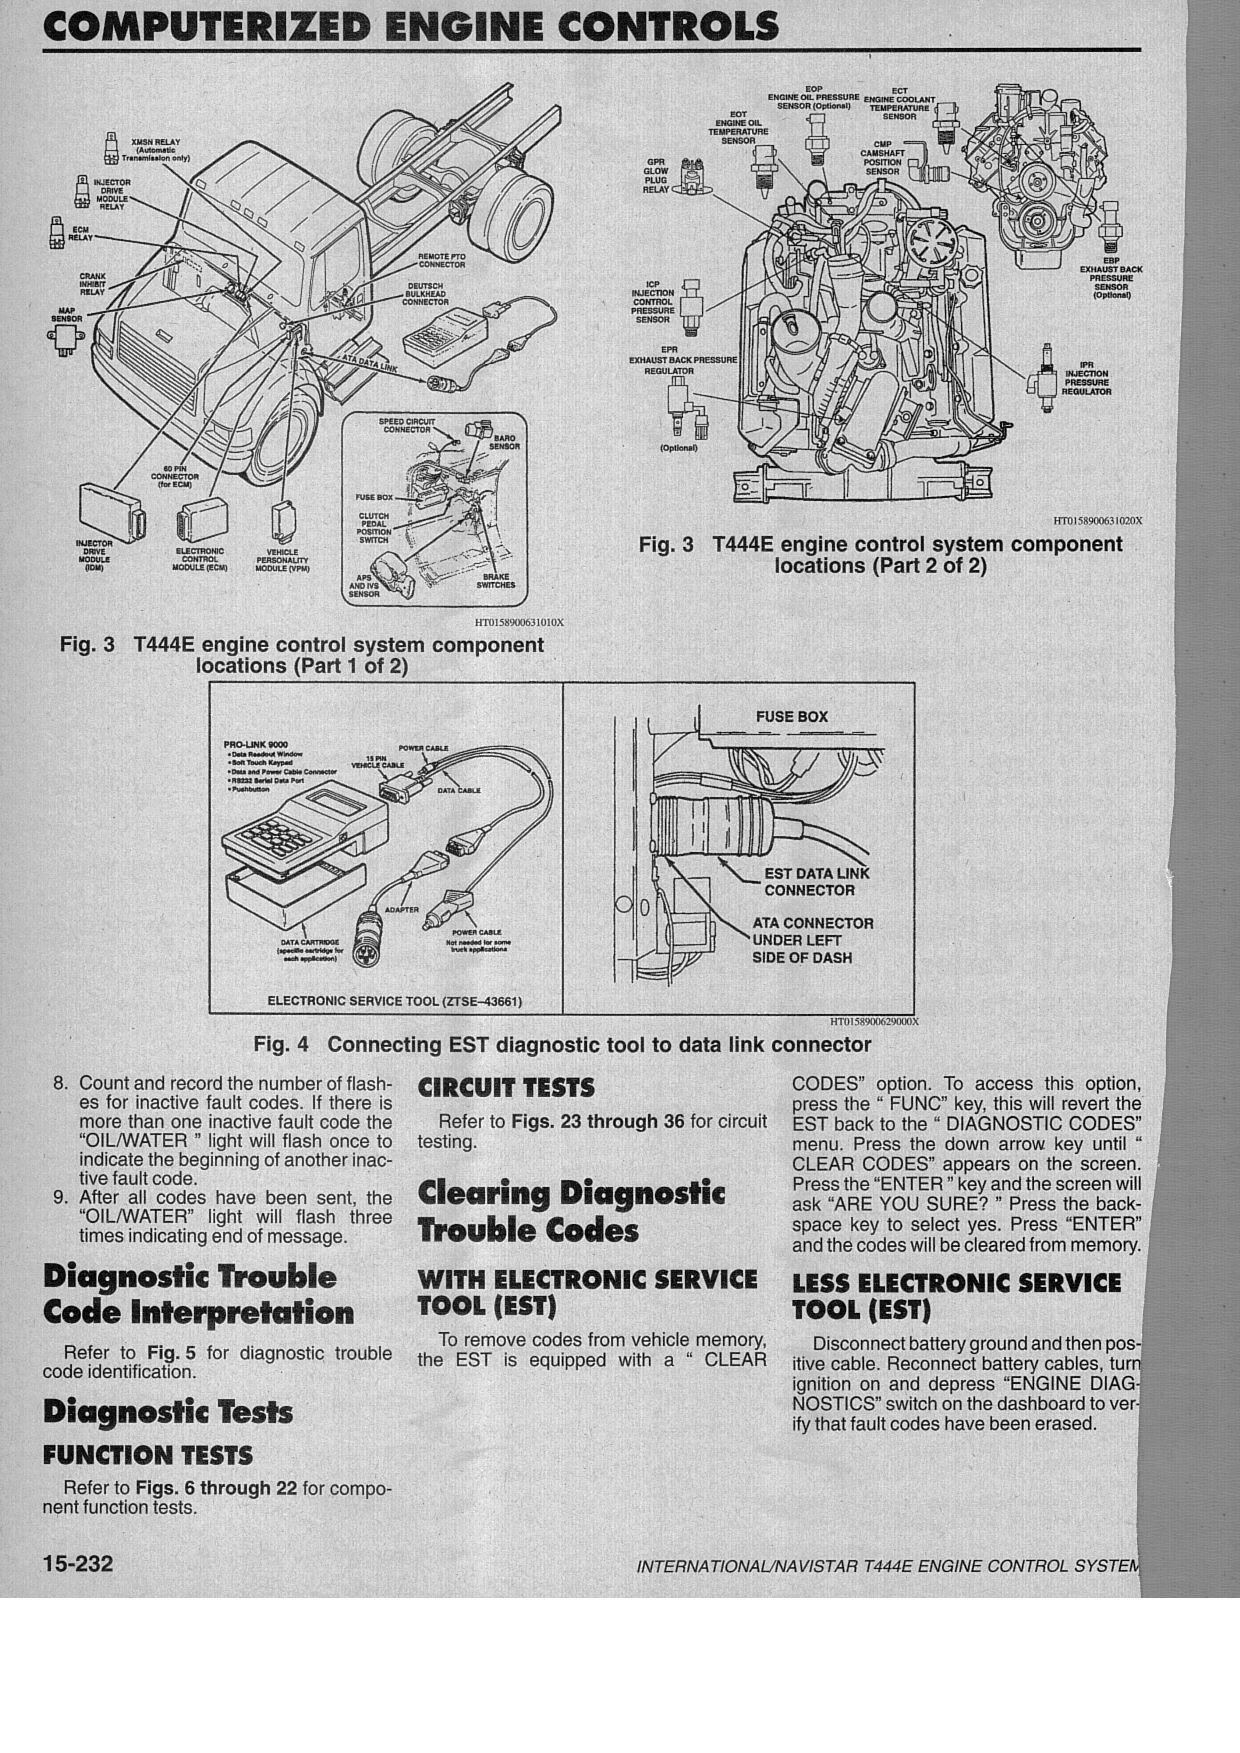 How do I get hold of a wiring diagram for a 1996 ...